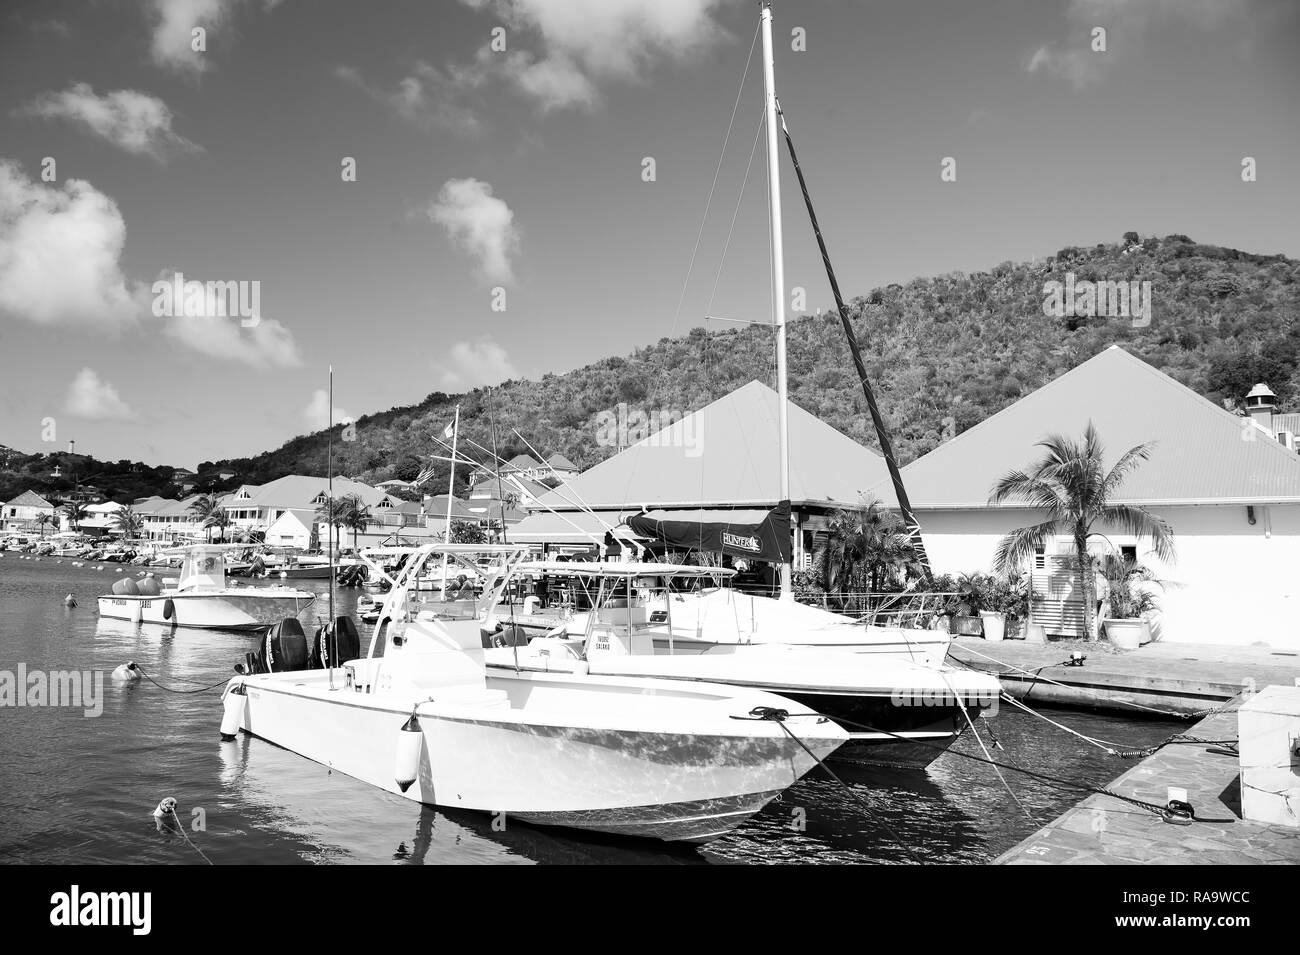 Gustavia, st.barts - January 25, 2016: sailboats and yachts anchored at sea pier on tropical beach. Yachting and sailing. Luxury travel on yacht. Summer vacation on island. Water transport and vessel. - Stock Image